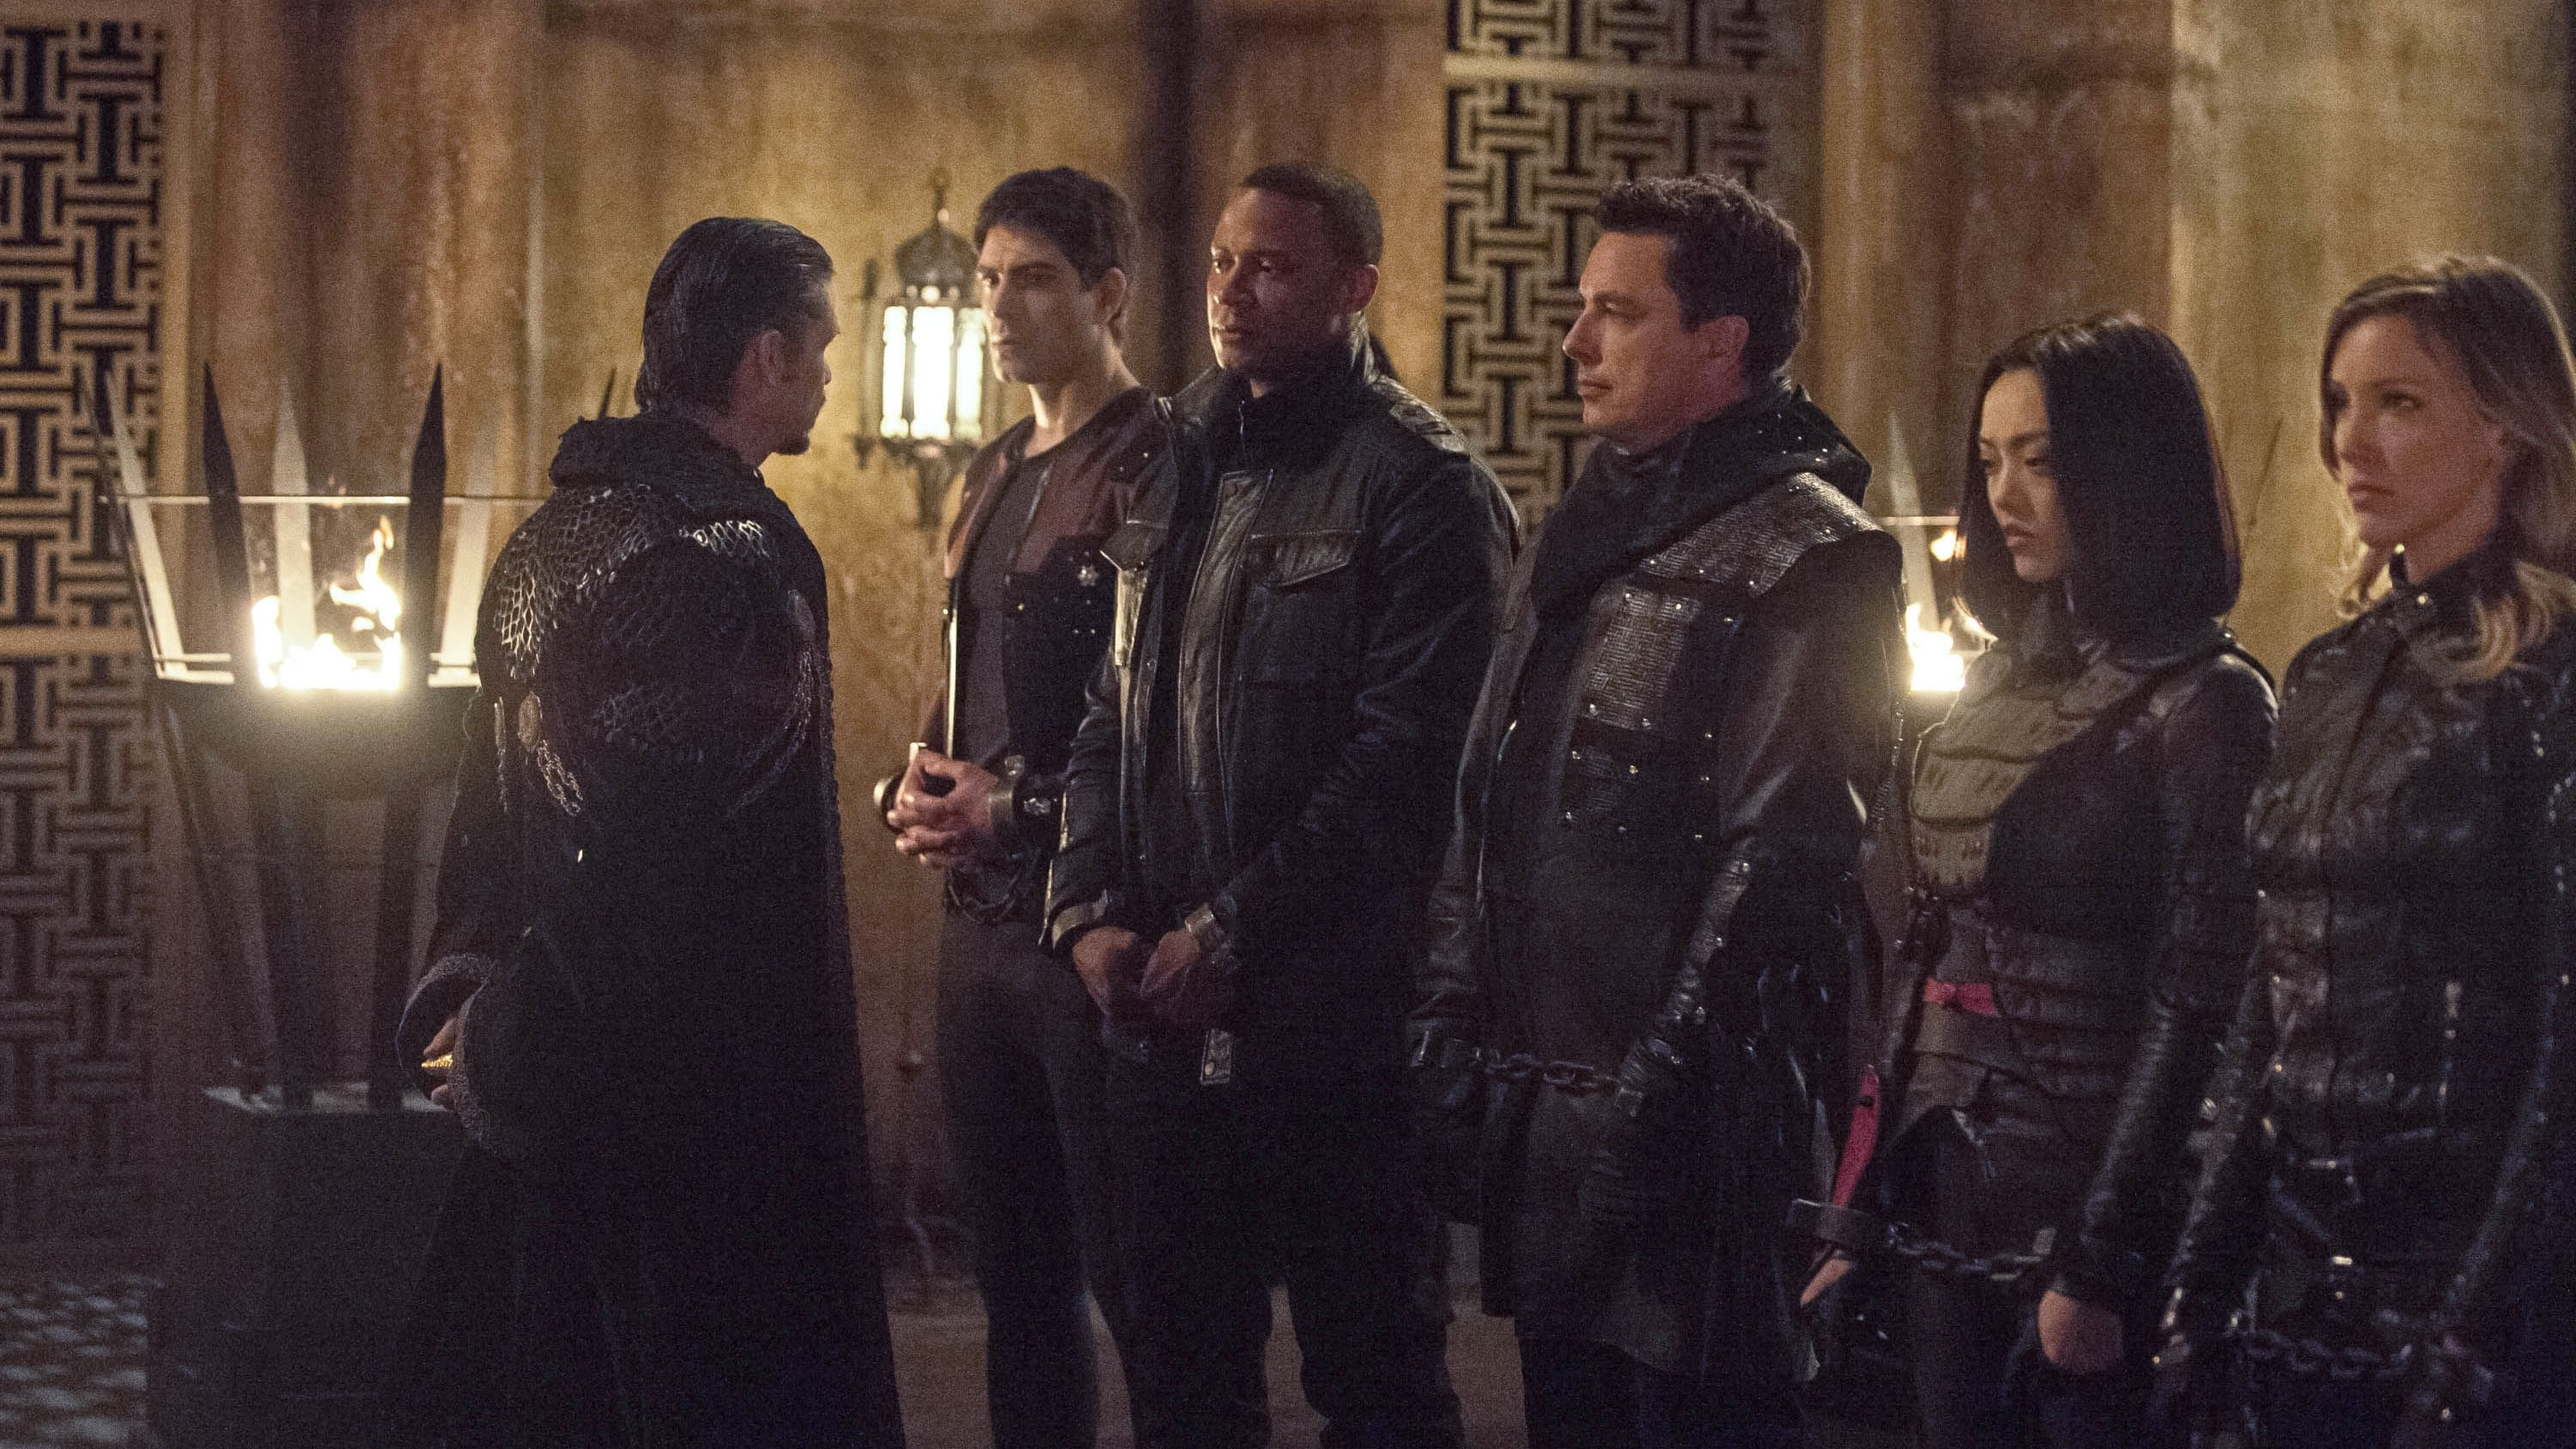 Arrow - Season 3 Episode 22 : This is Your Sword